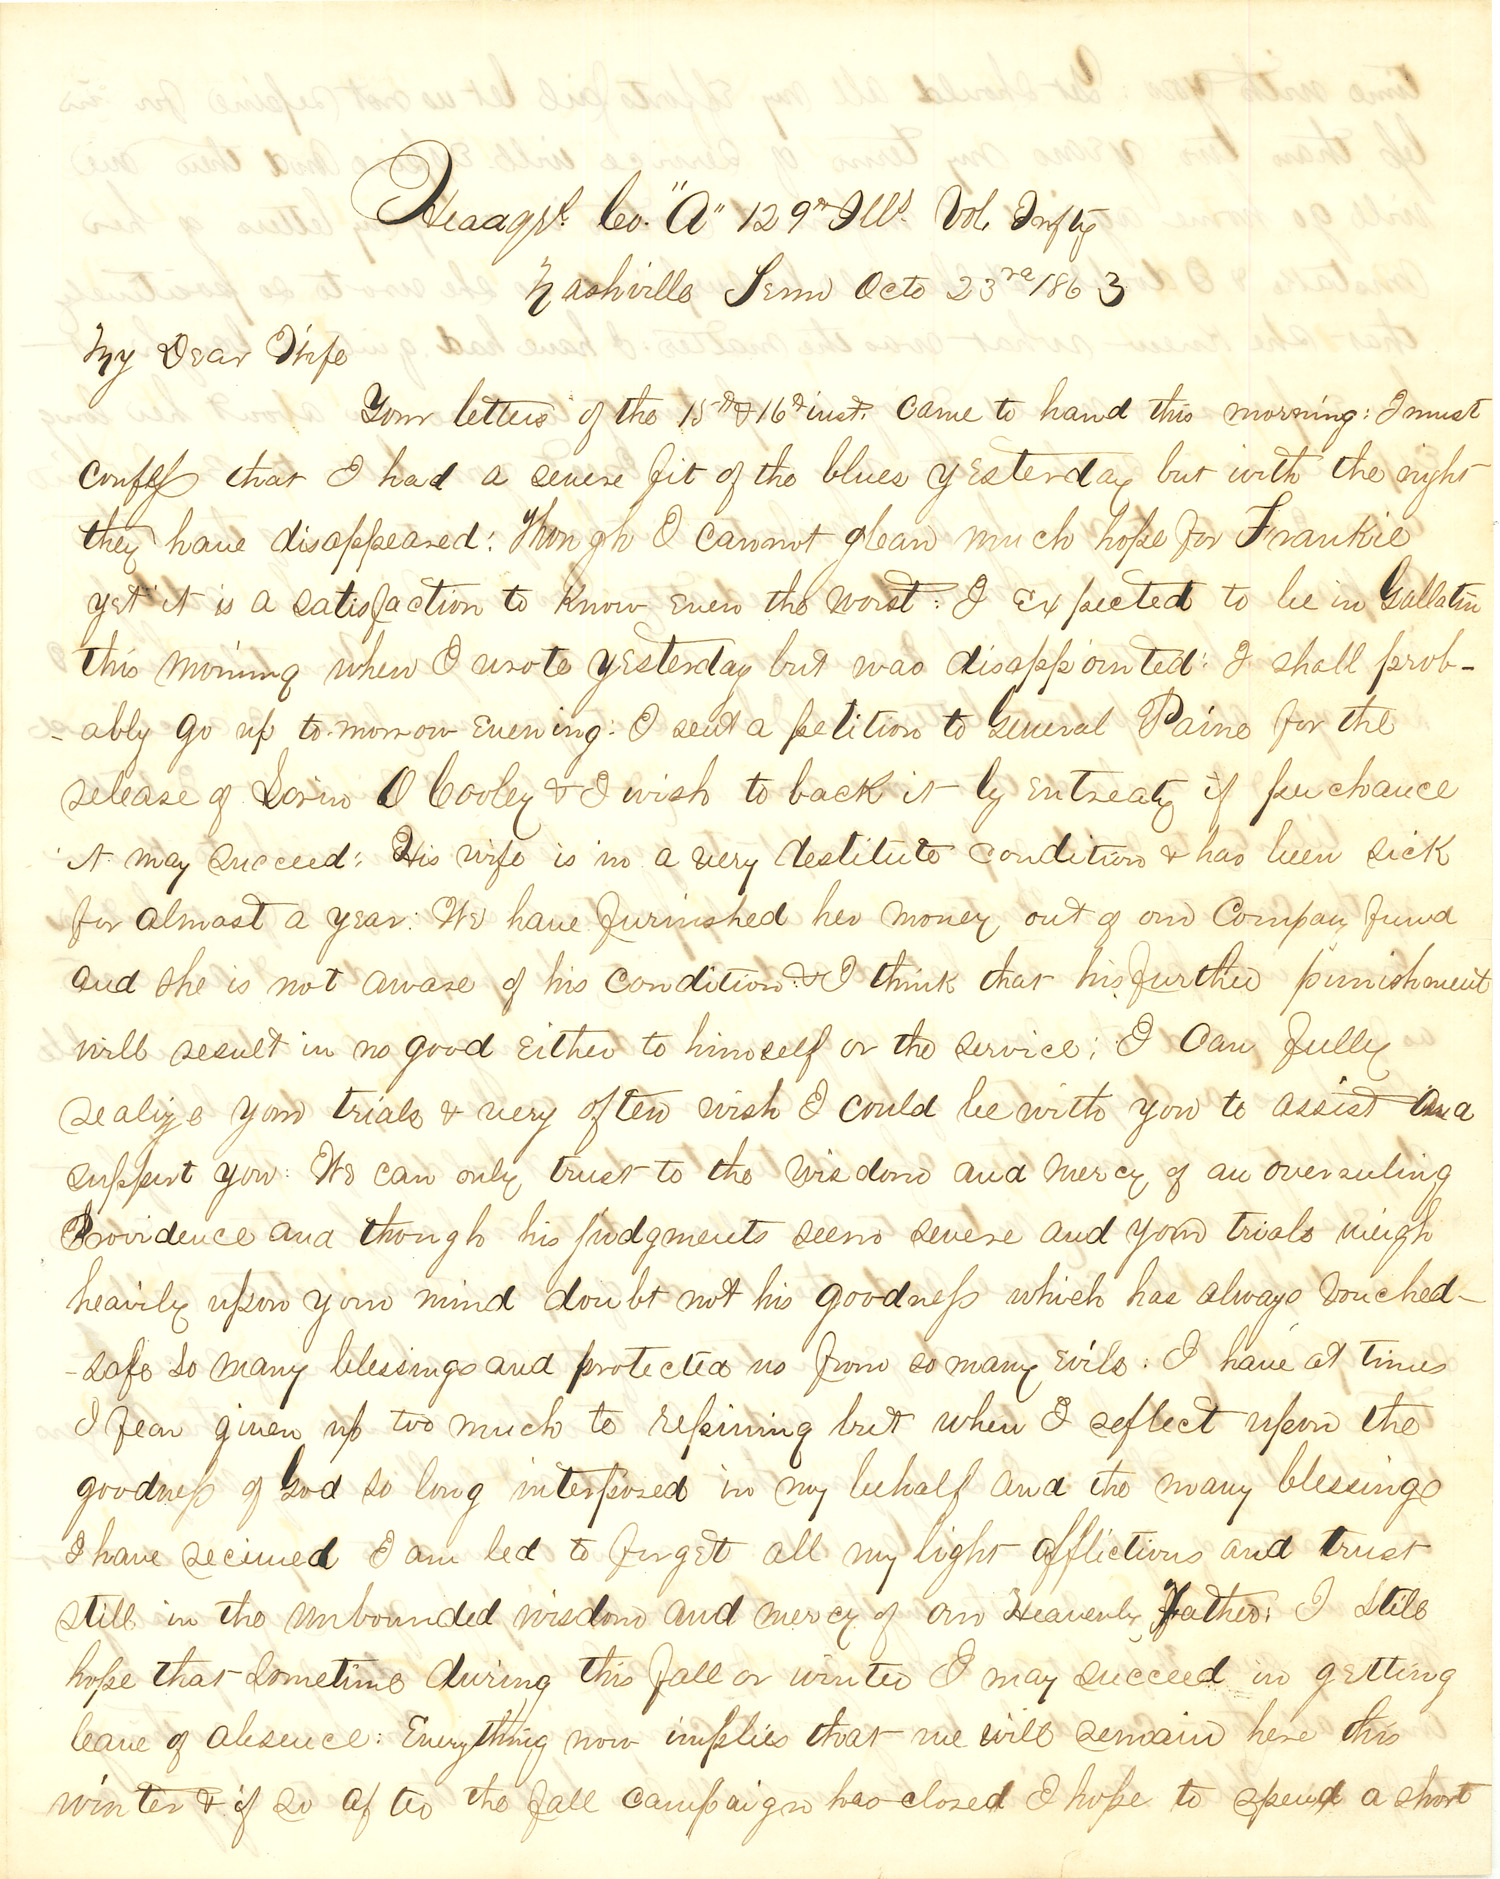 Joseph Culver Letter, October 23, 1863, Page 1